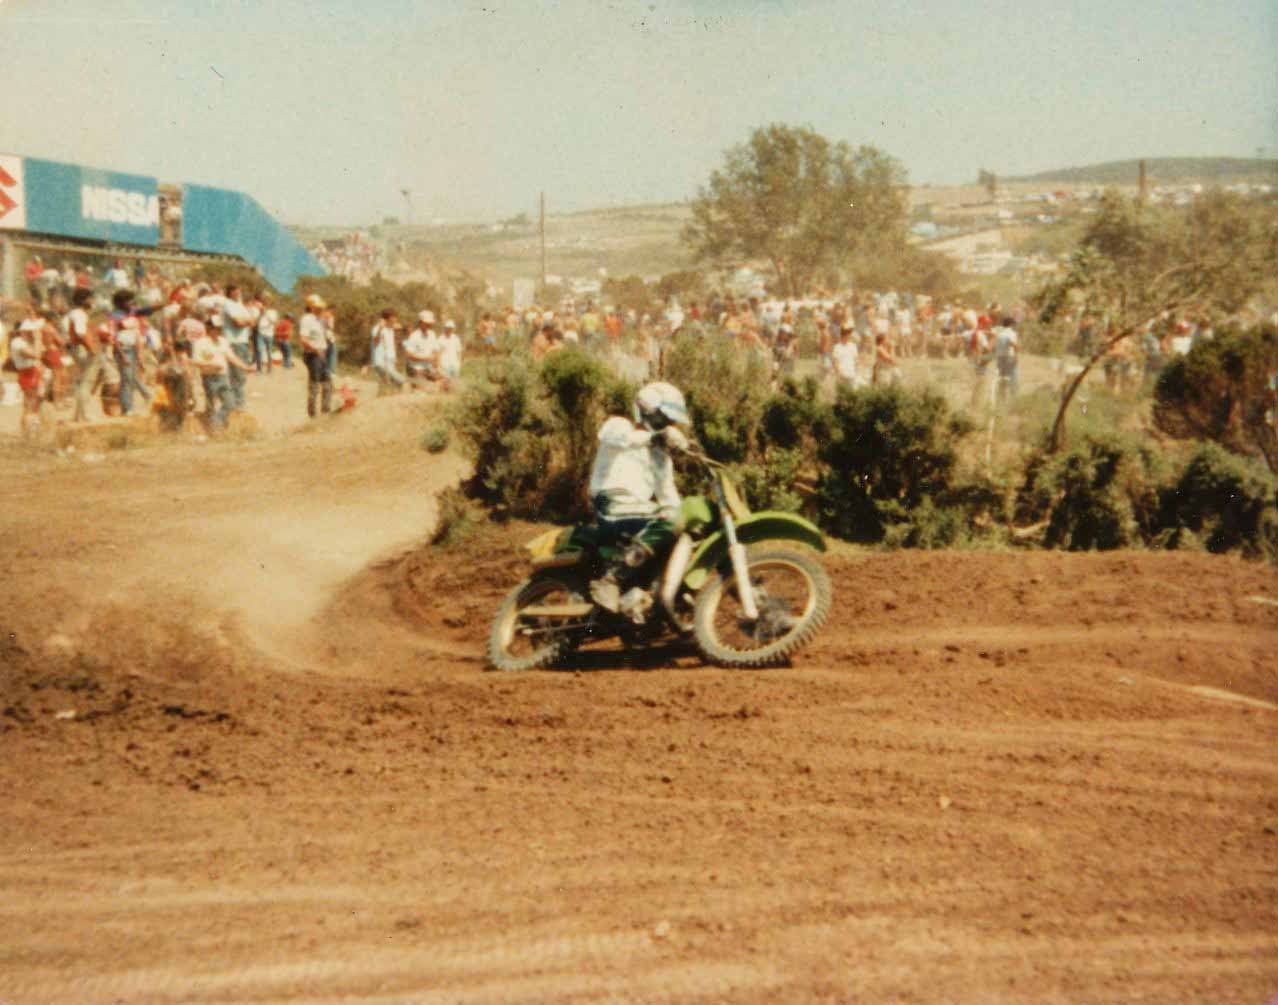 motocross pic2 from KandL